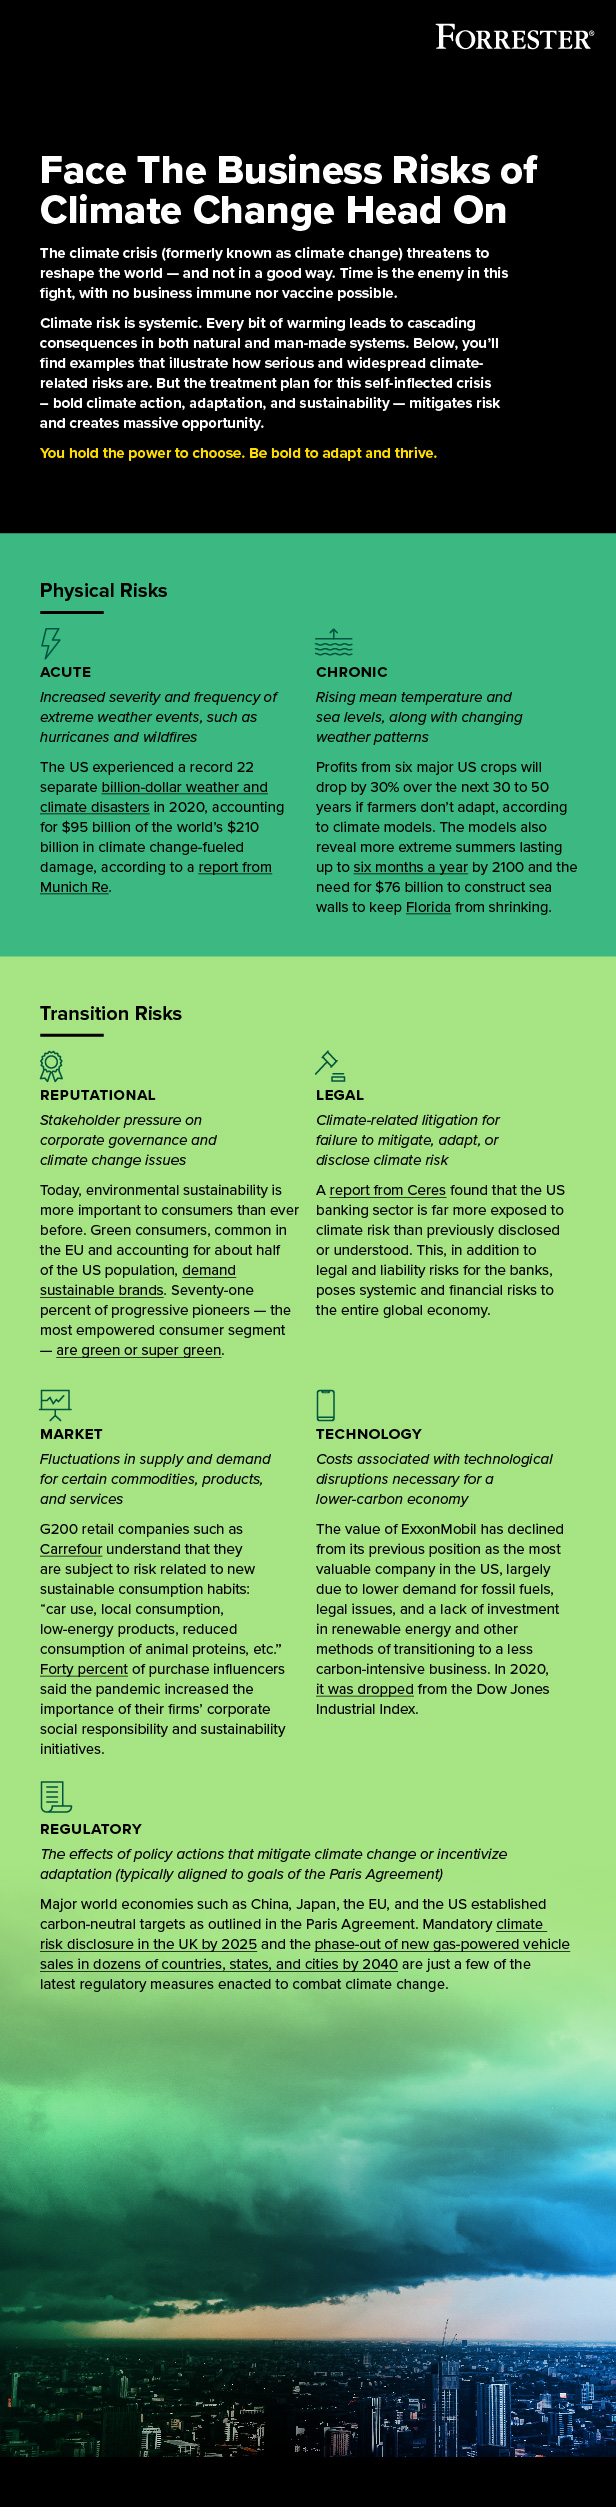 Face the business risks of climate change head on